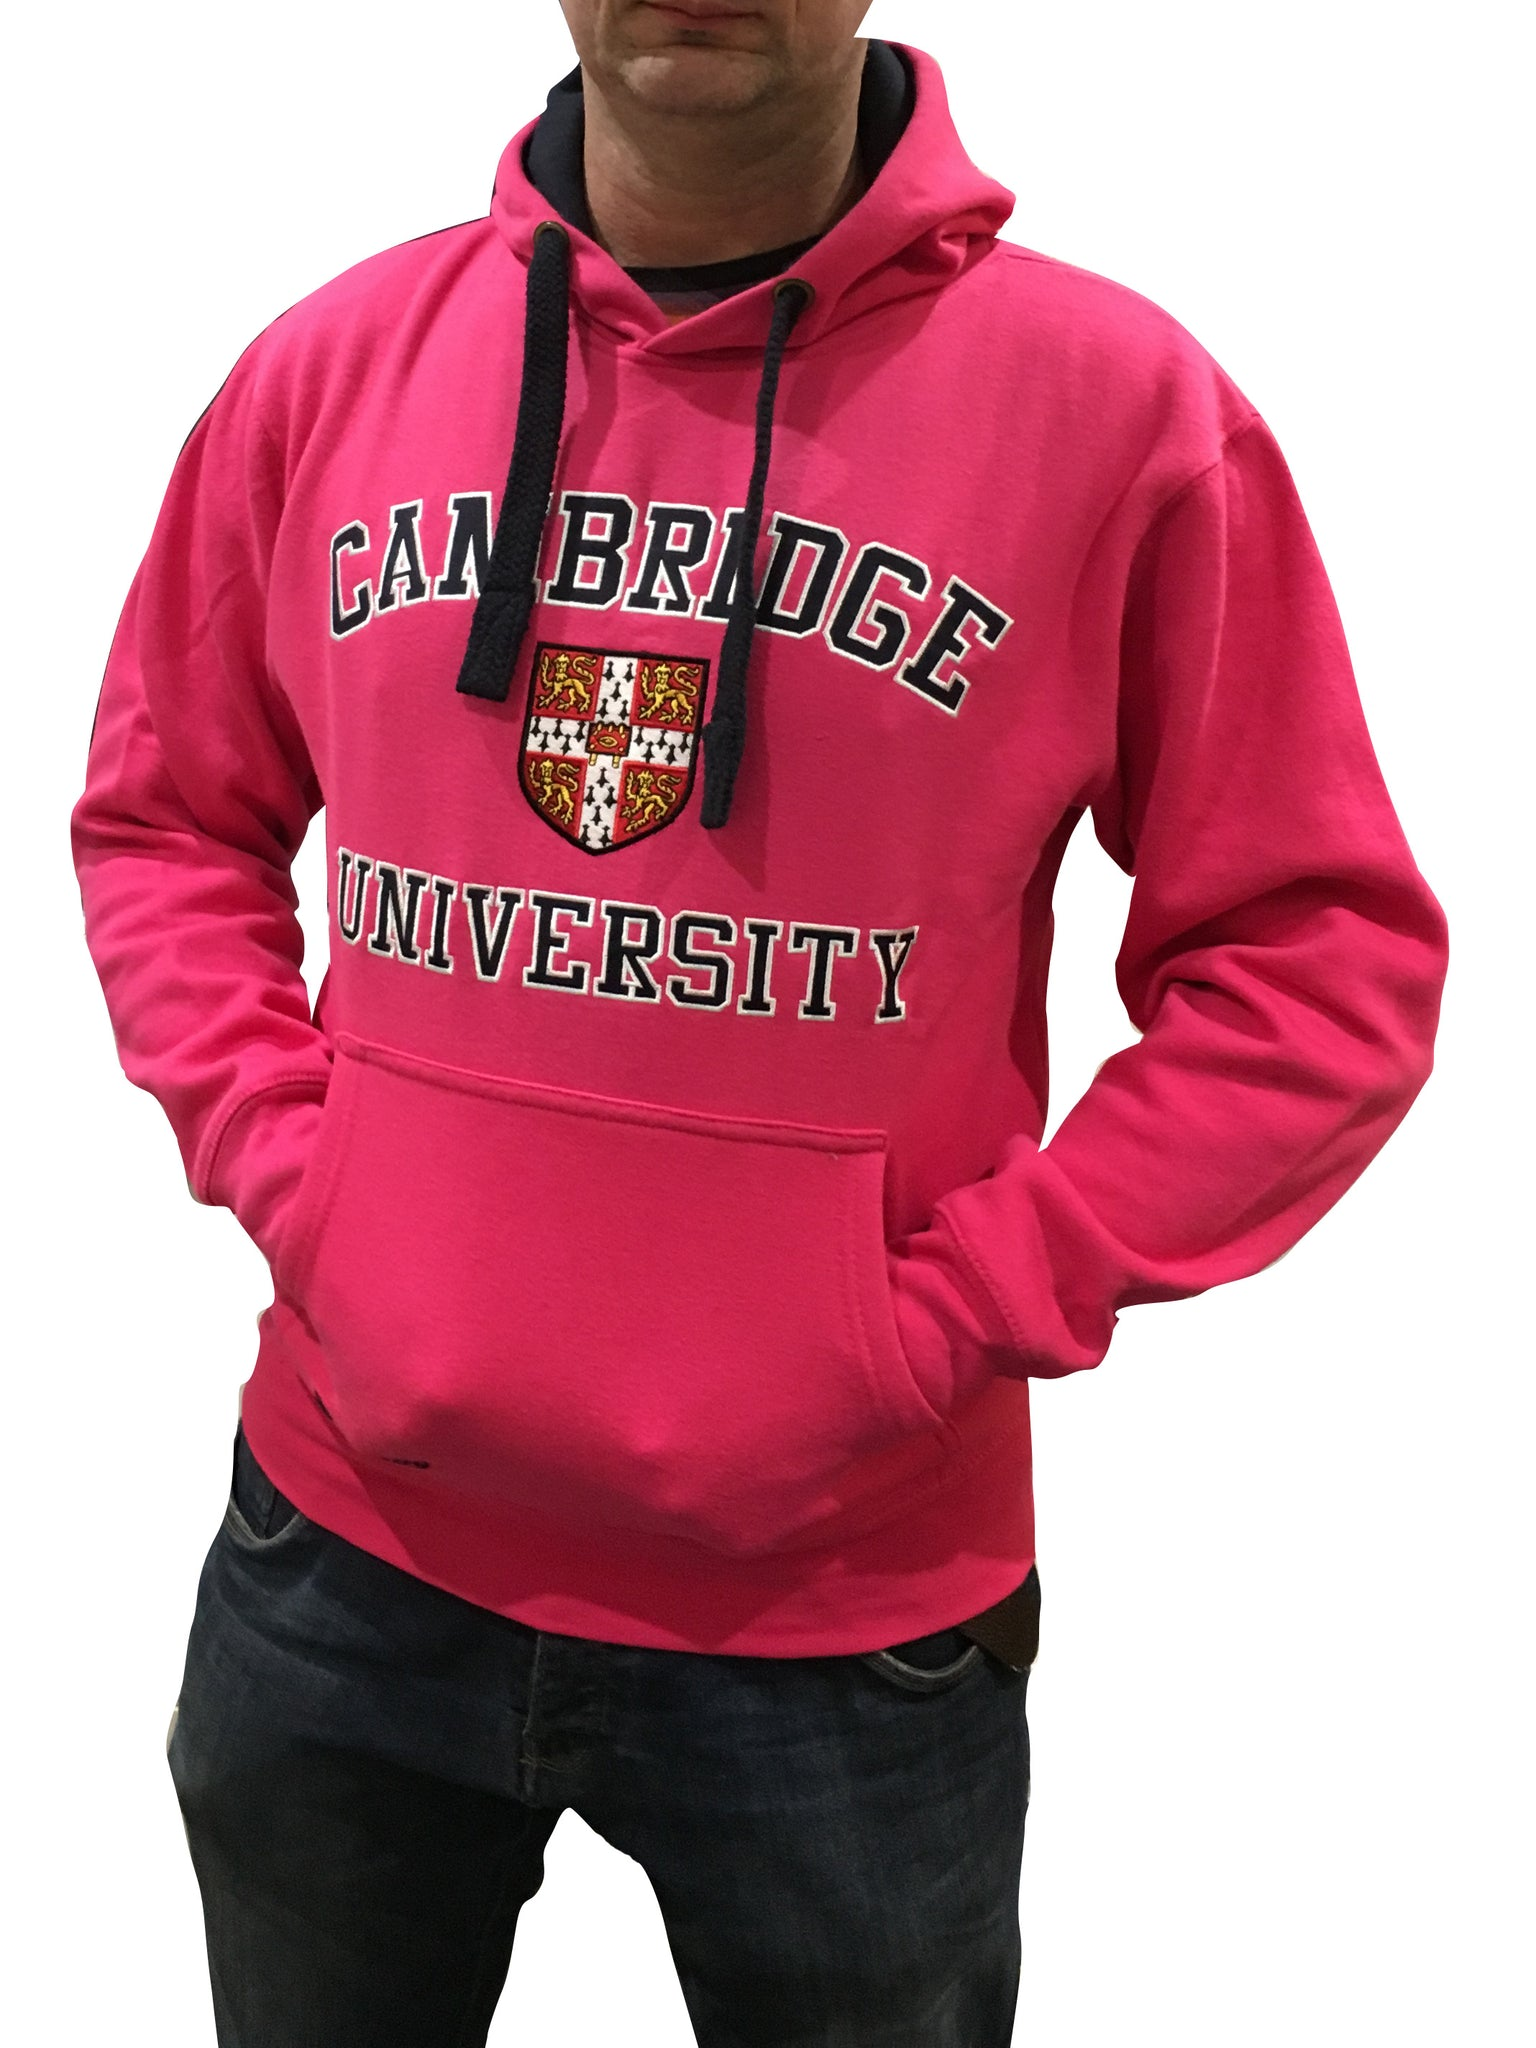 Cambridge University Embroidered Hoodie - Pink - Official Apparel